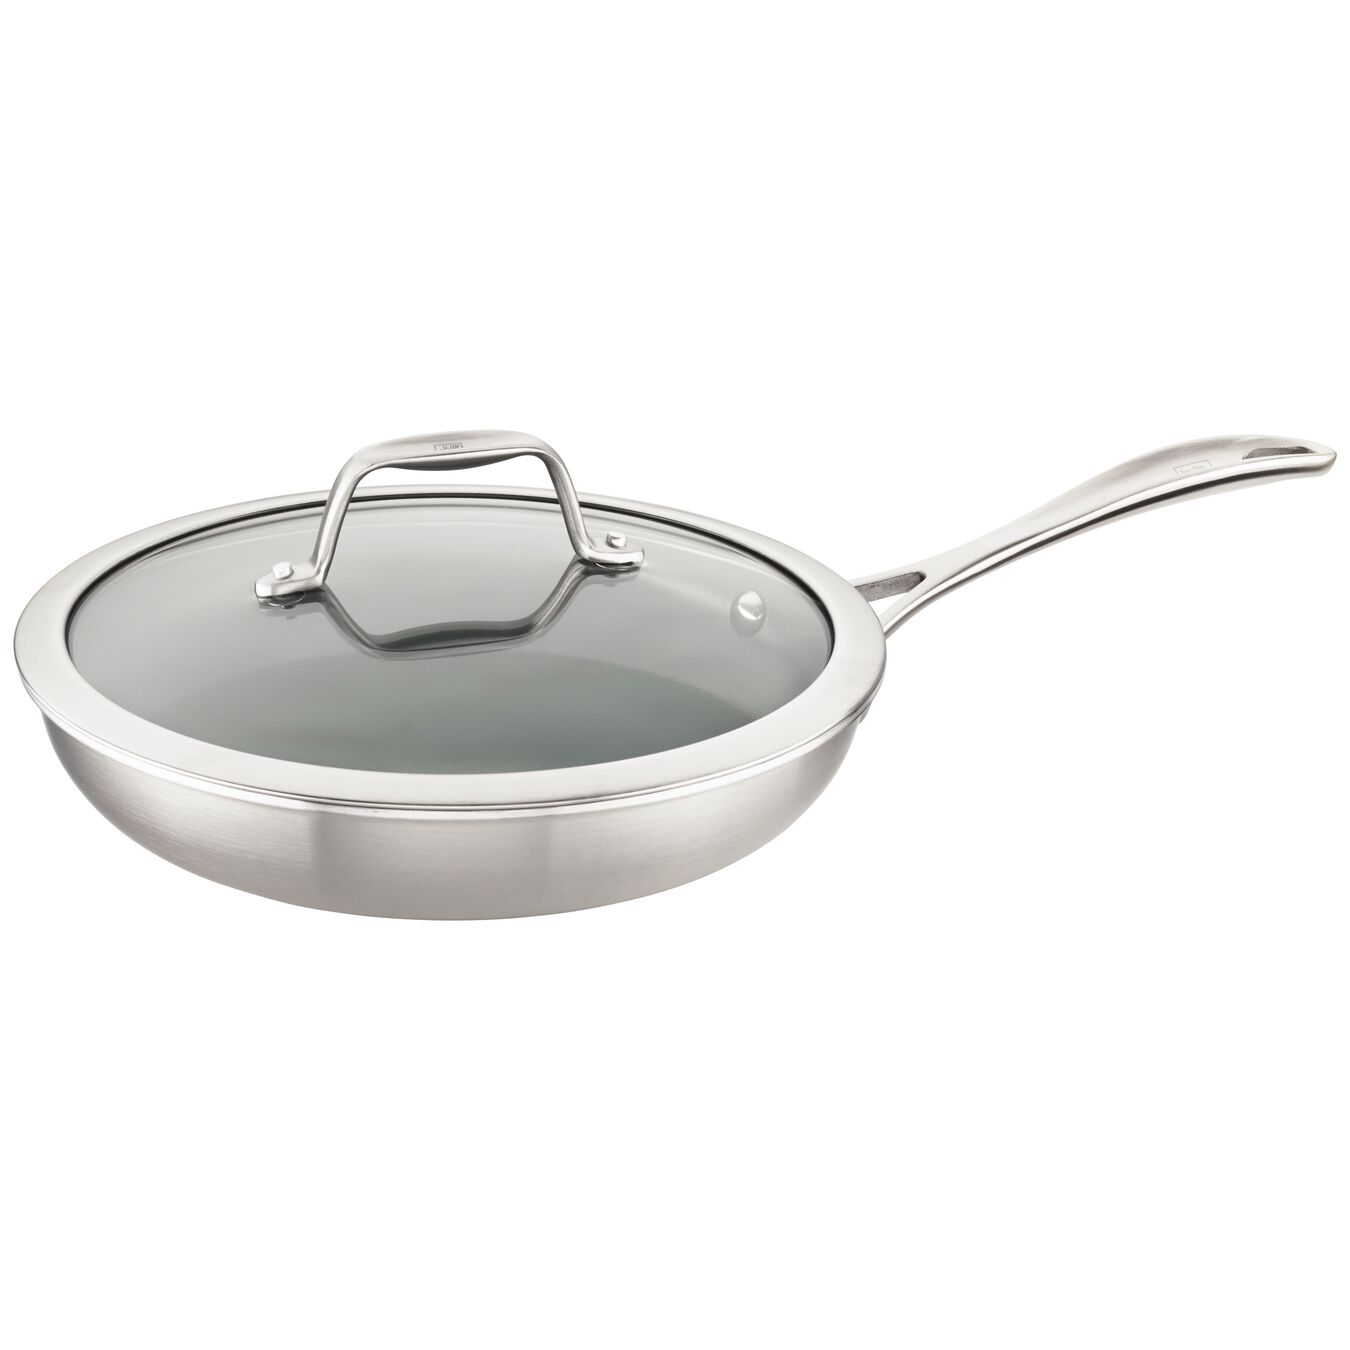 3-ply 9.5-inch Stainless Steel Ceramic Nonstick Fry Pan with Lid,,large 1